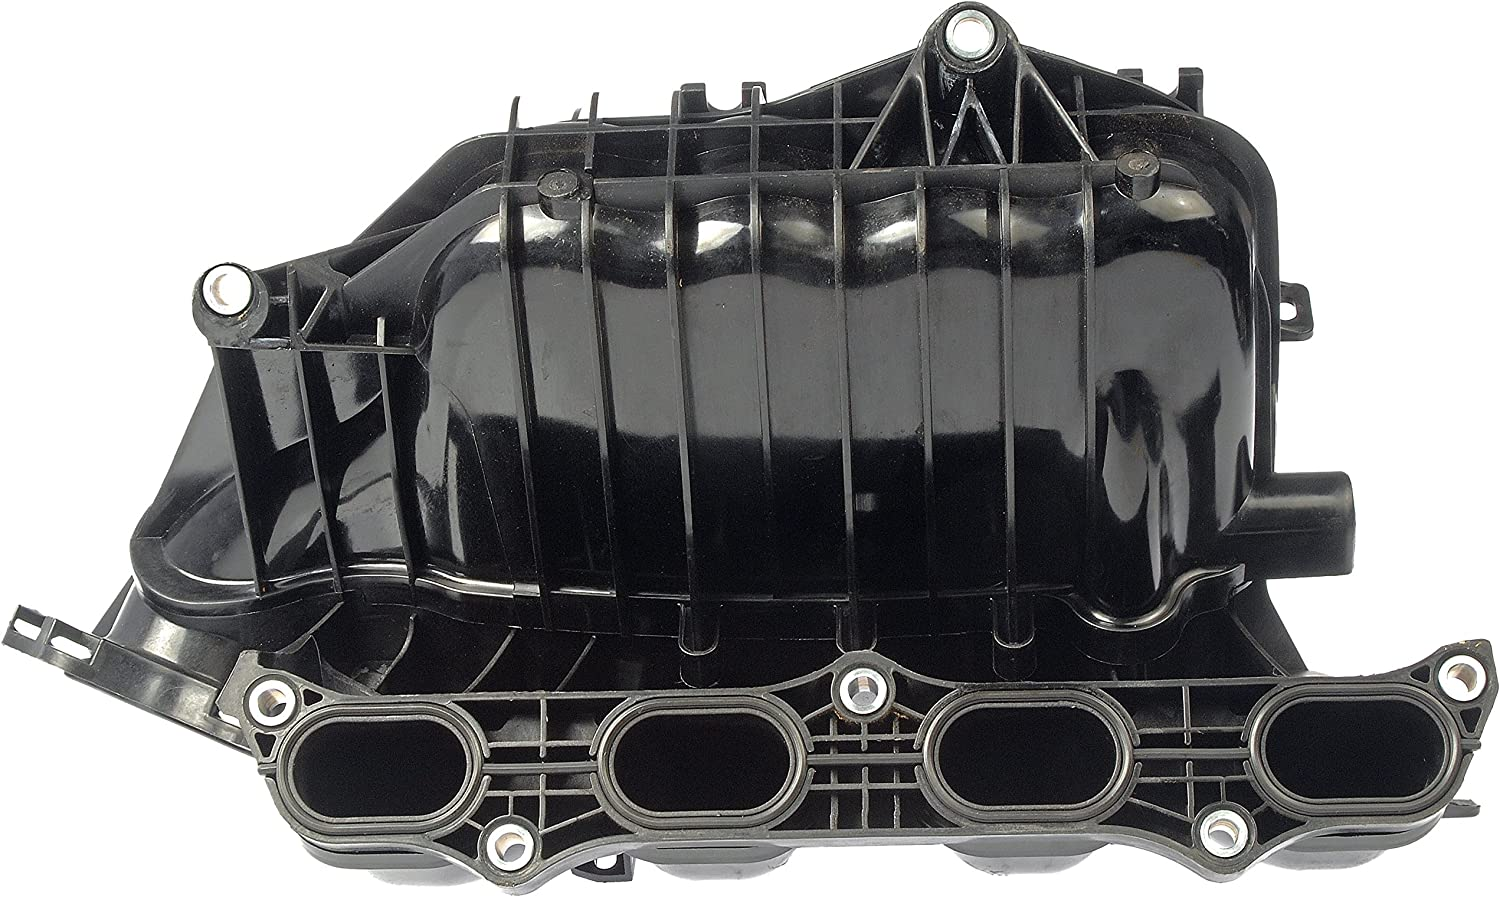 Dorman 615-565 Upper Plastic Intake Manifold - Includes Gaskets for Select Lexus/Scion/Toyota Models